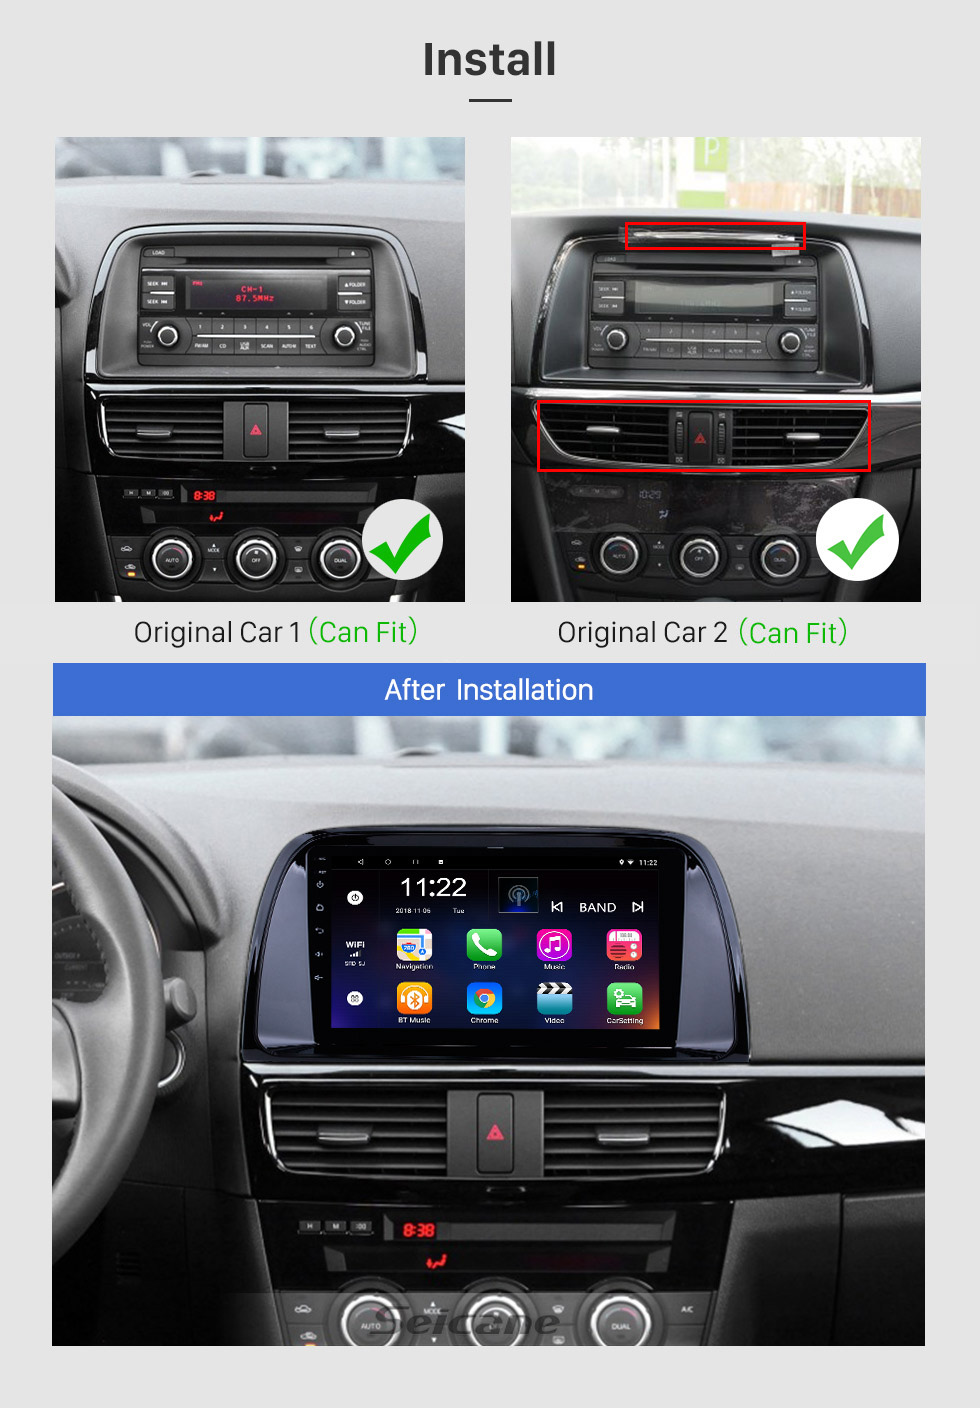 Seicane 9 inch 2012-2015 Mazda CX-5 Touchscreen Android 10.0 GPS Navigation System with WIFI Bluetooth Music USB OBD2 AUX Radio Backup Camera Steering Wheel Control